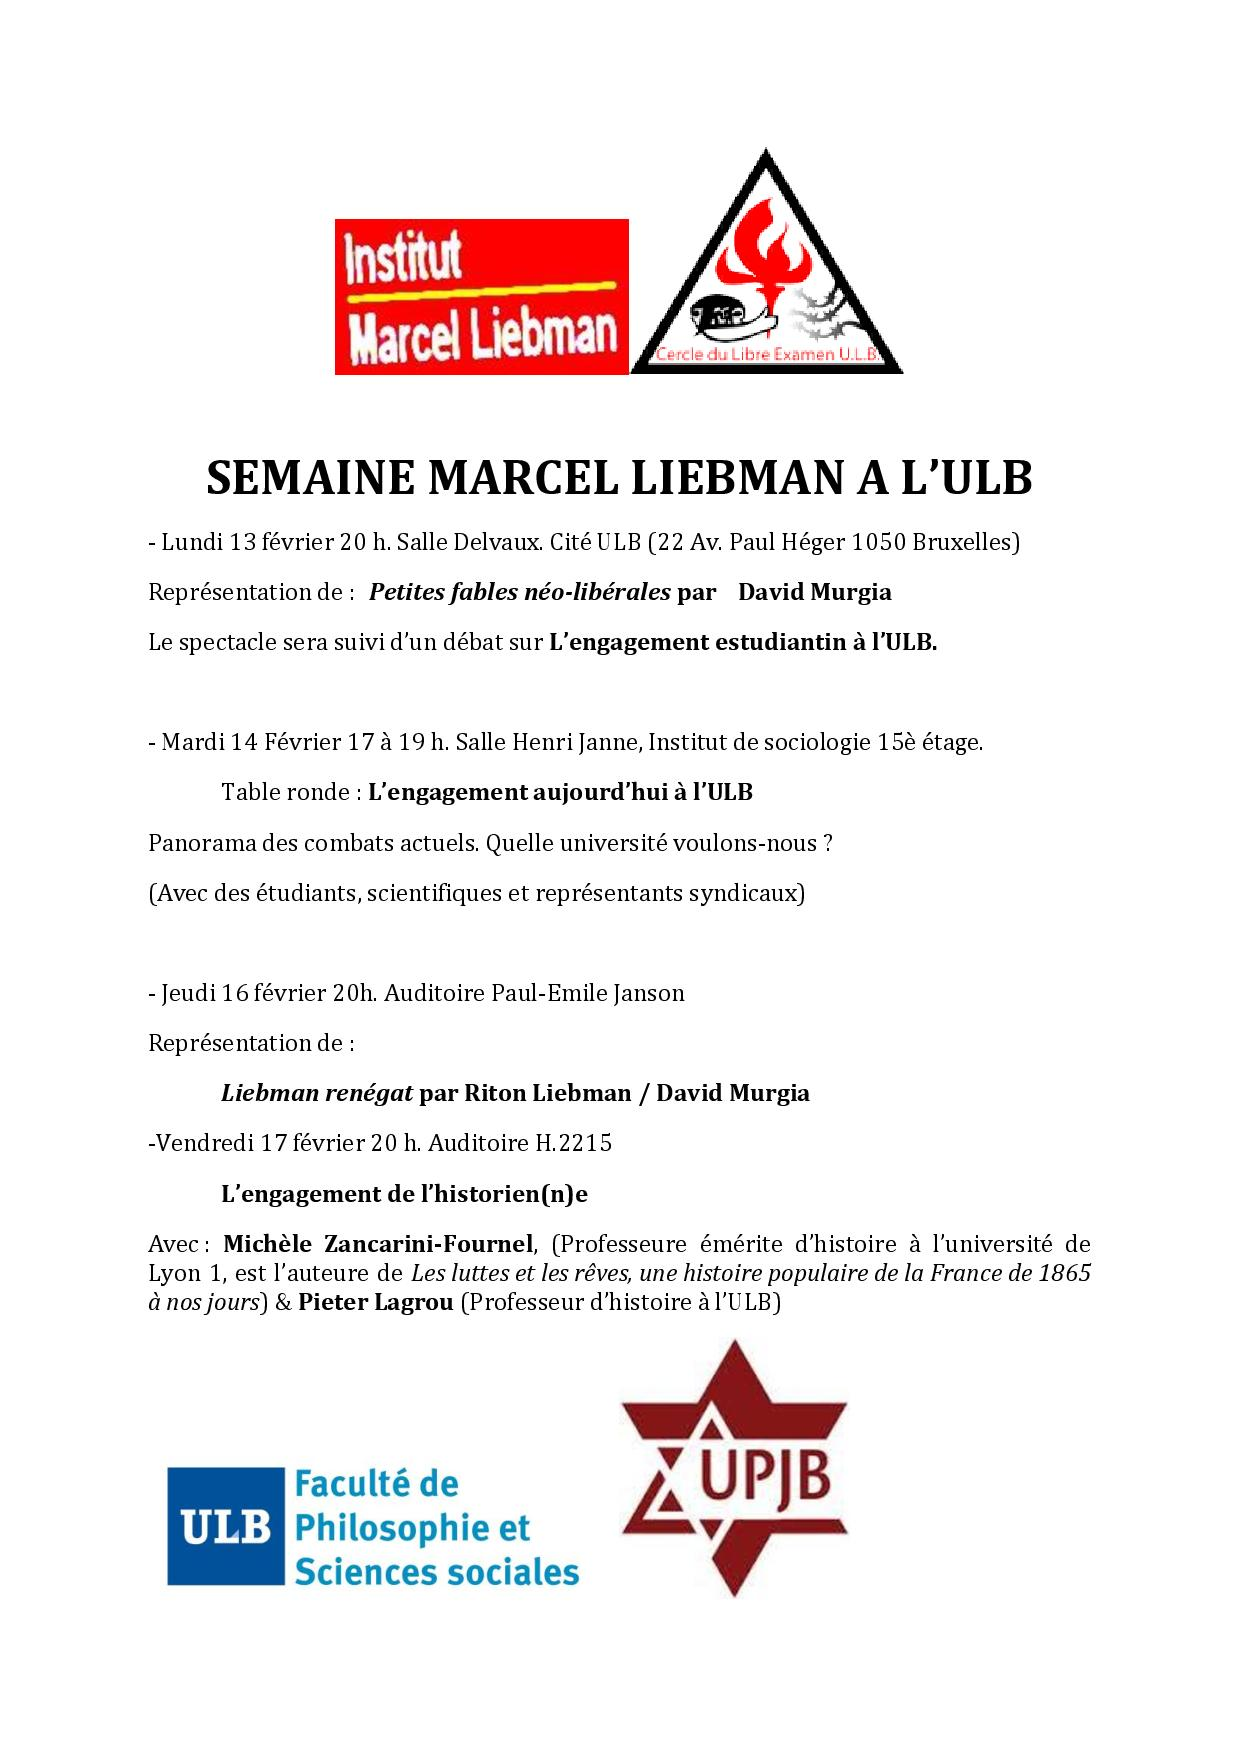 SEMAINE_MARCEL_LIEBMAN(1)-page-001